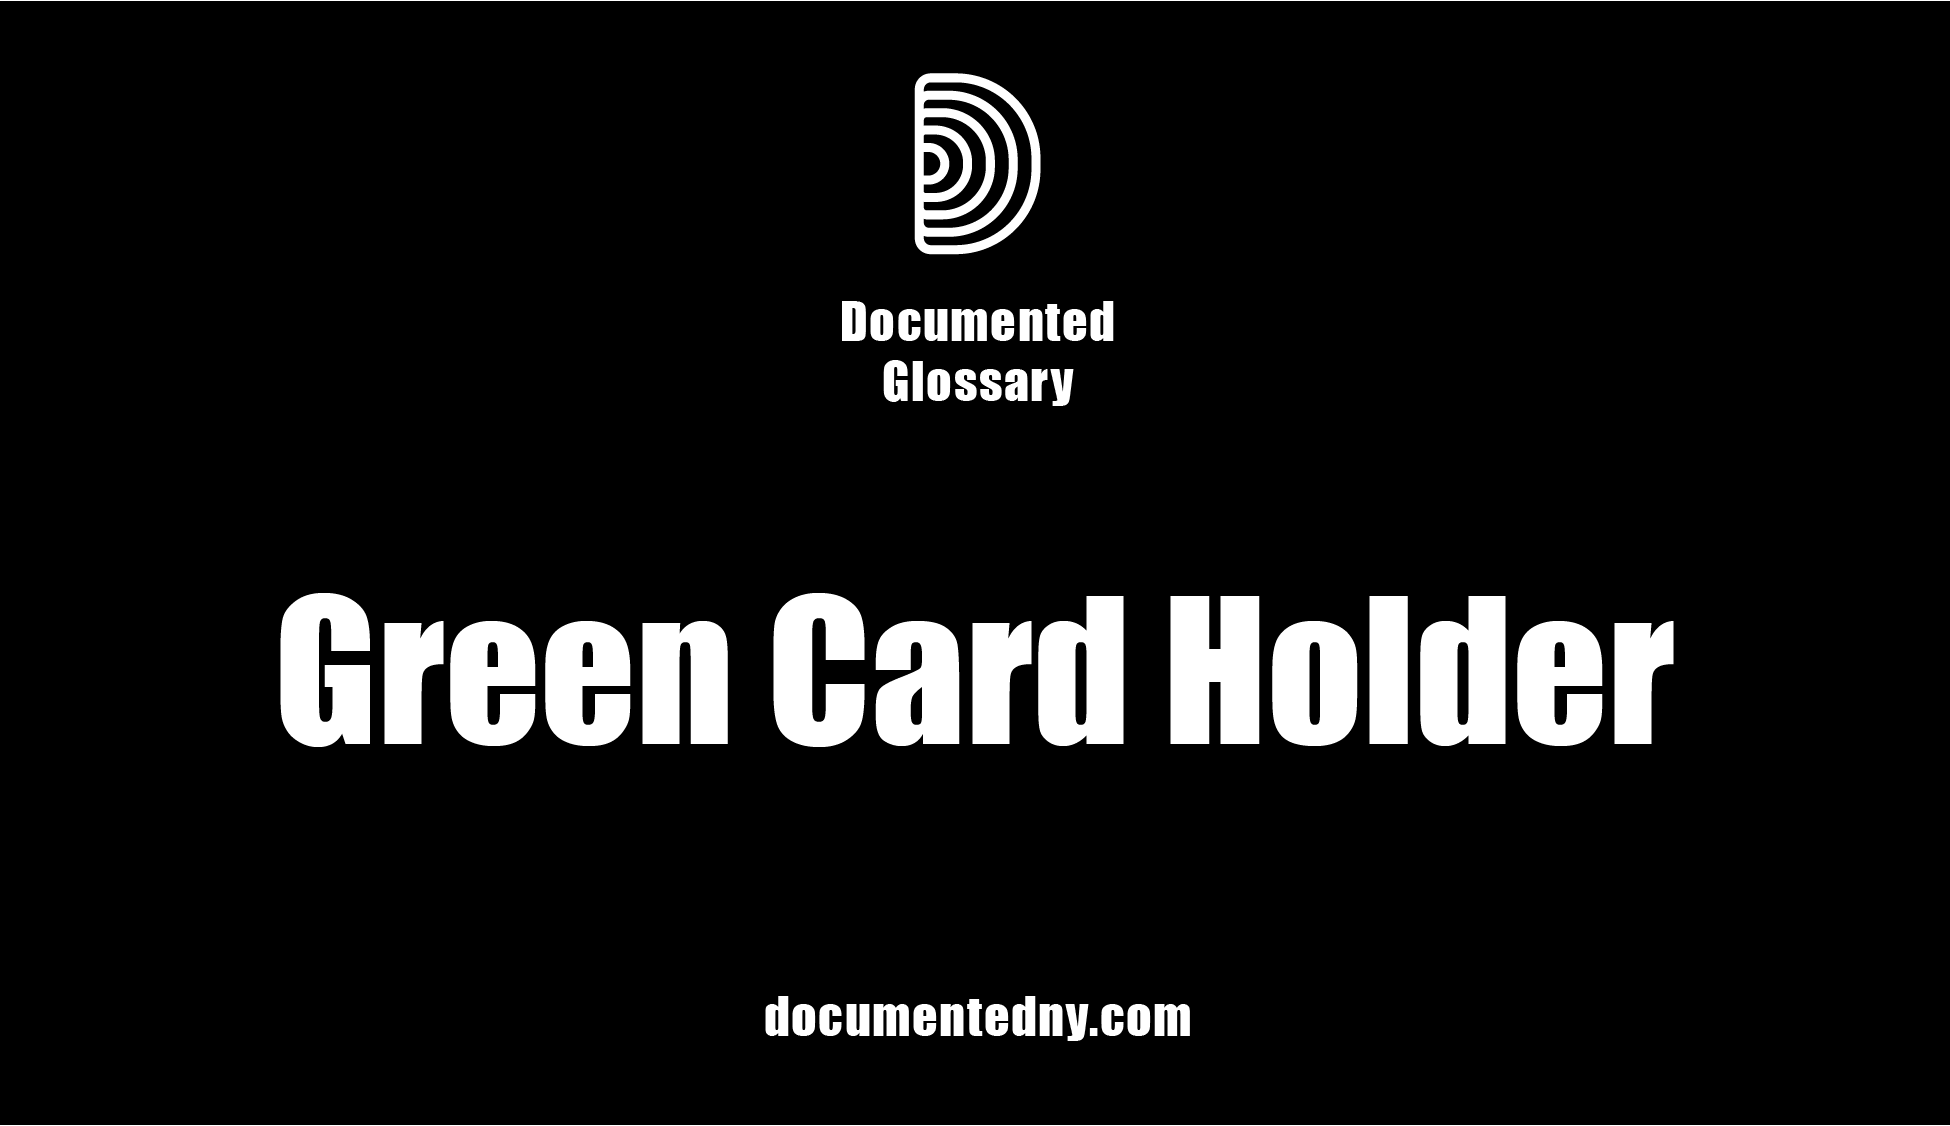 A green card, officially known as a Permanent Resident Card, is a physical card that shows that an individual is a permanent resident of the United States and can work and travel anywhere within the U.S.